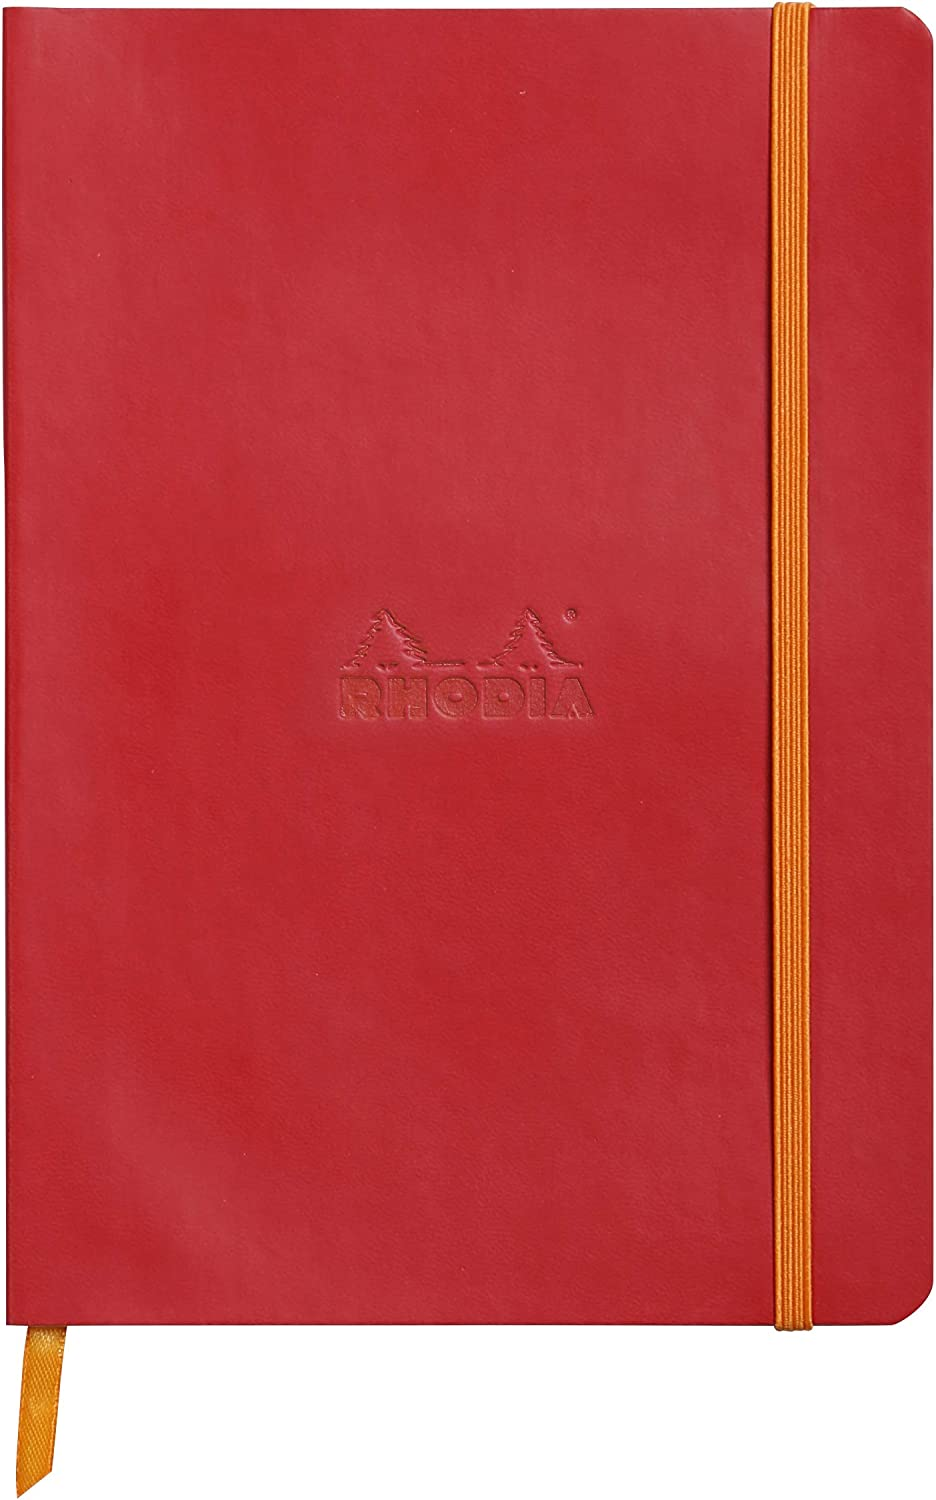 Rhodia Rhodiarama SoftCover Notebook - 80 Dots Sheets - 6 x 8 1/4 - Poppy Cover